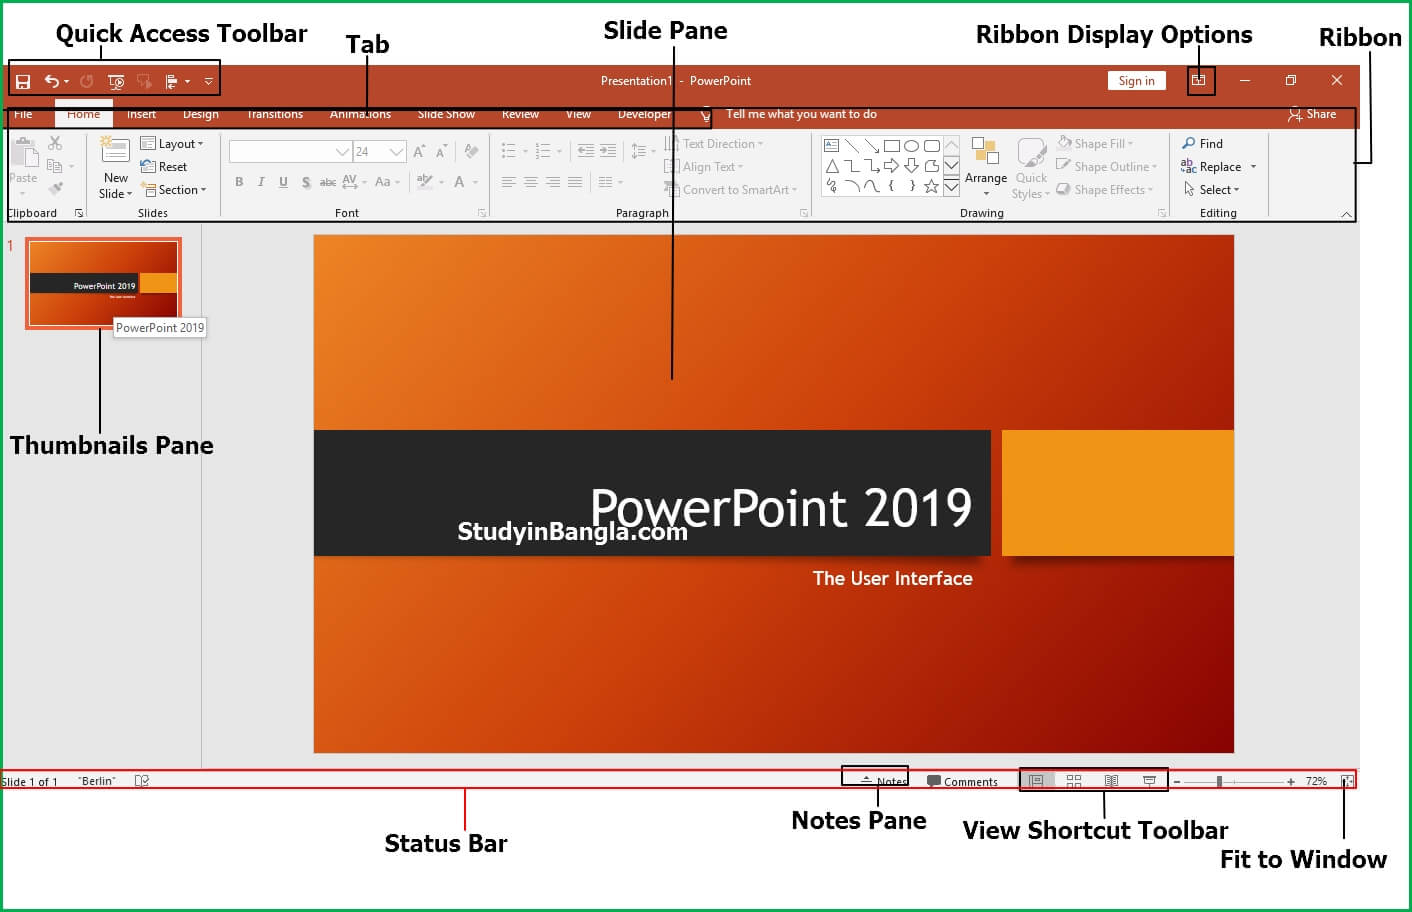 powerpoint-2019-user-intreface